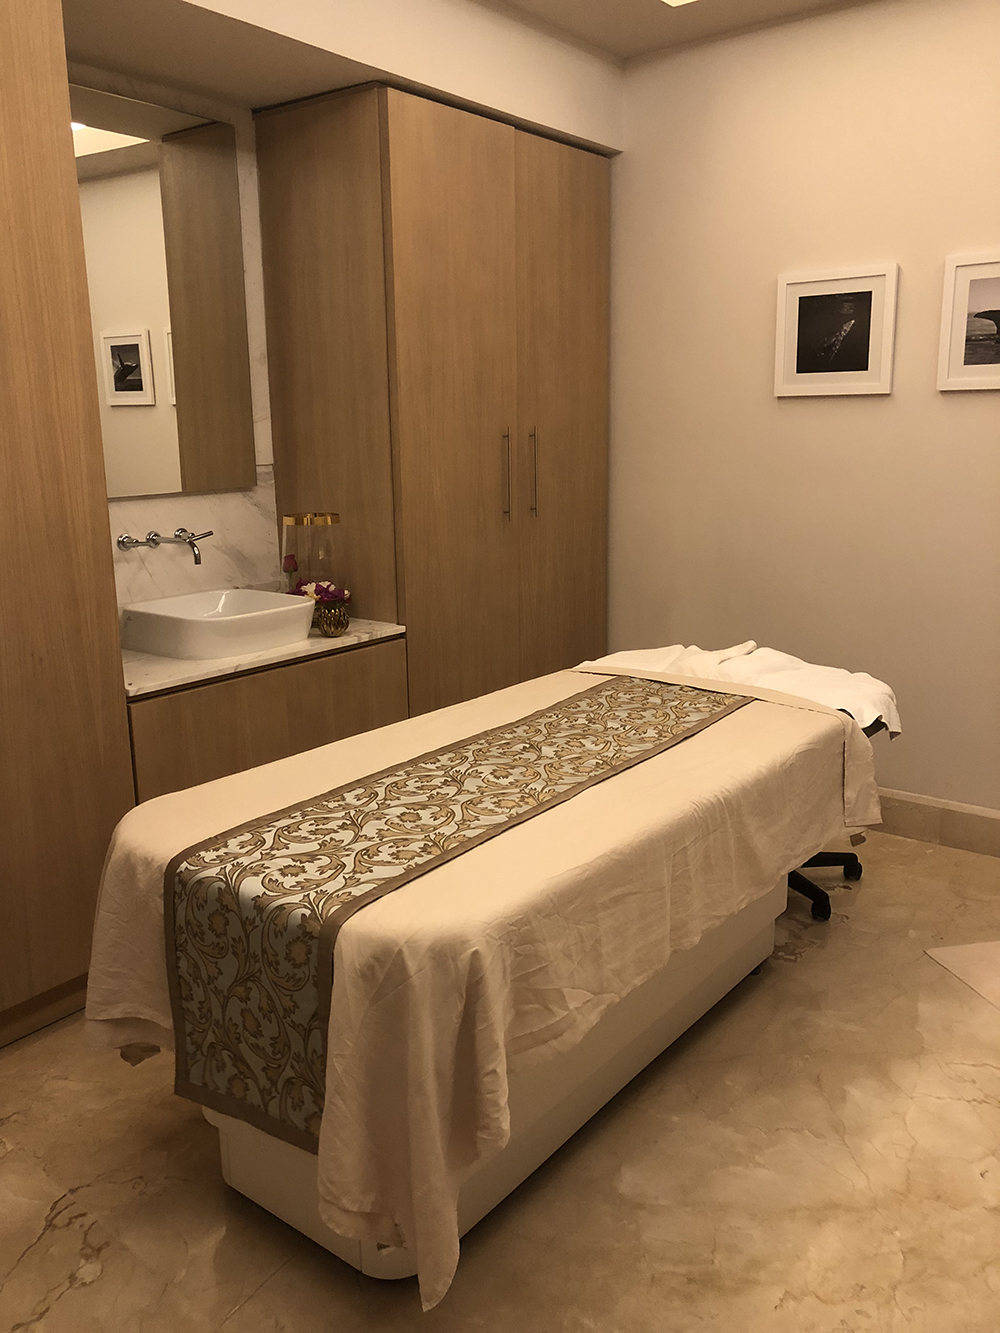 One of the 25 treatment rooms at BLANCSPA.